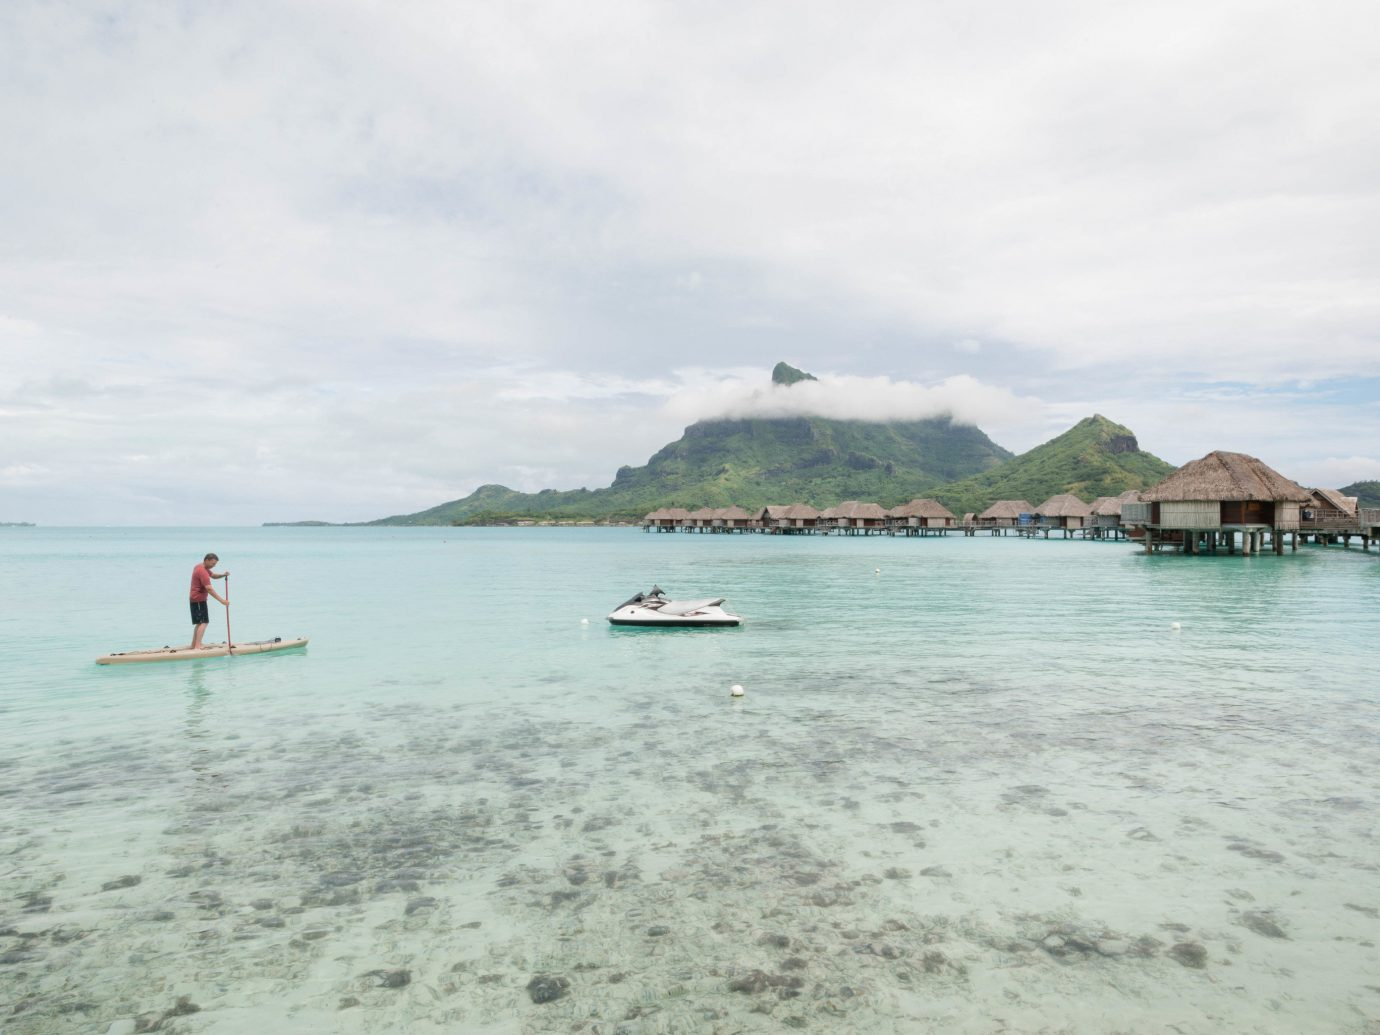 Islands Trip Ideas water sky outdoor Boat Nature Sea Beach body of water shore Coast bay Ocean vacation vehicle boating Island cove Lake cape day